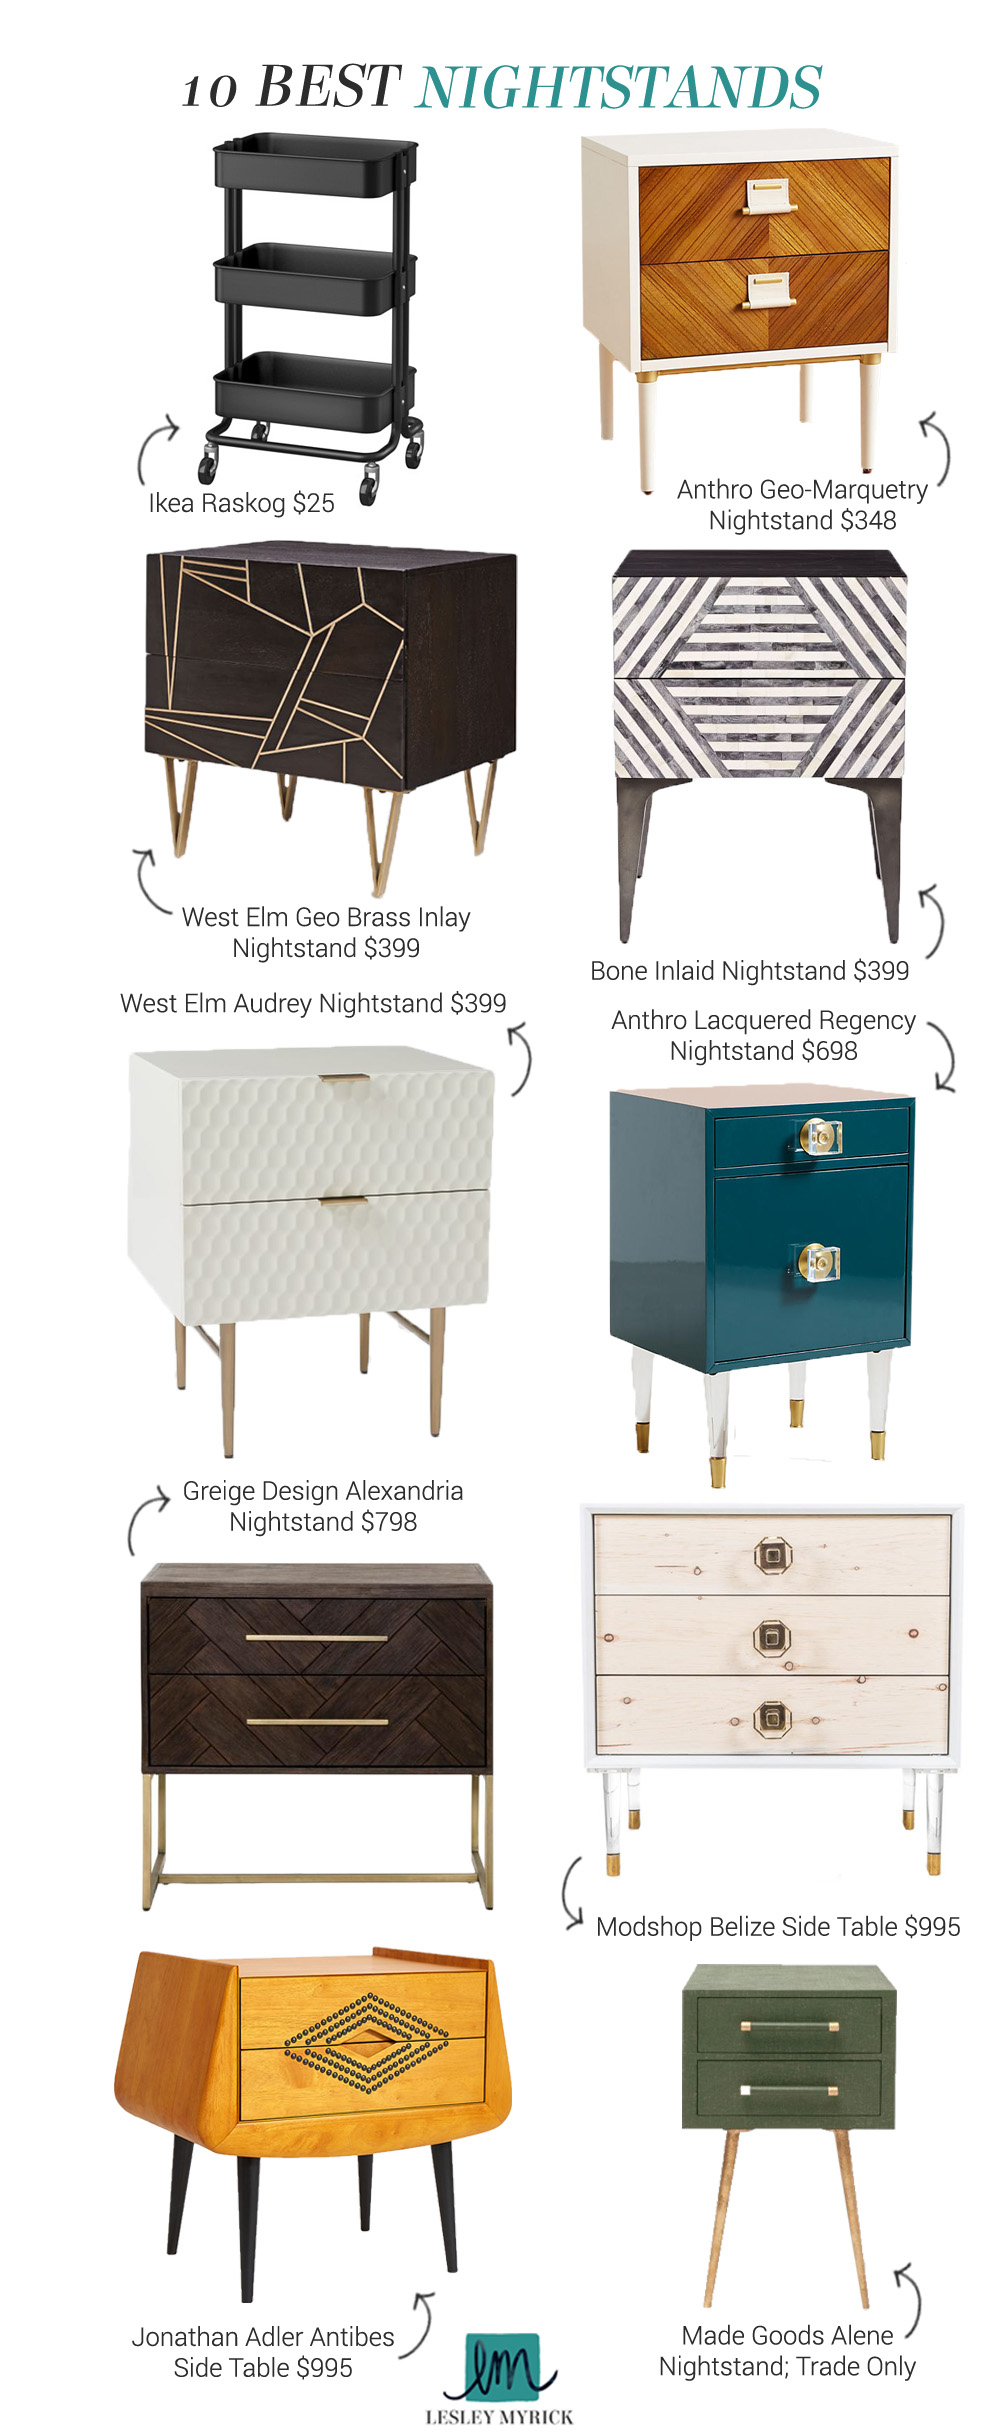 lesley best archives page myrick art nightstands lovell accent table target the designer from interior stylist outdoor furniture coca cola tiffany hanging lamp sea themed shades